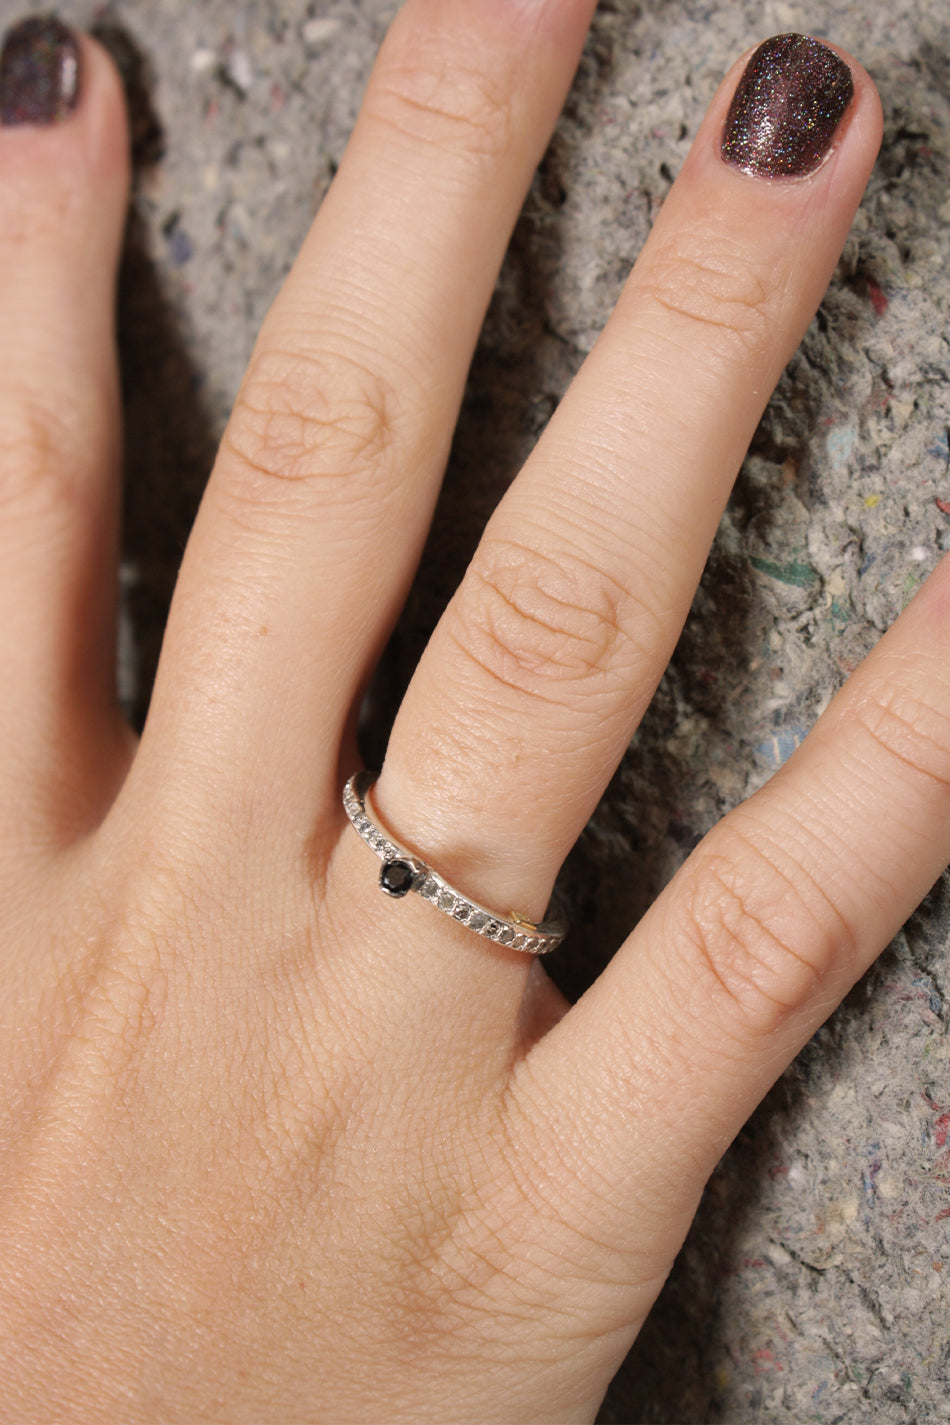 Hata Icy grey & Black Diamond Ring